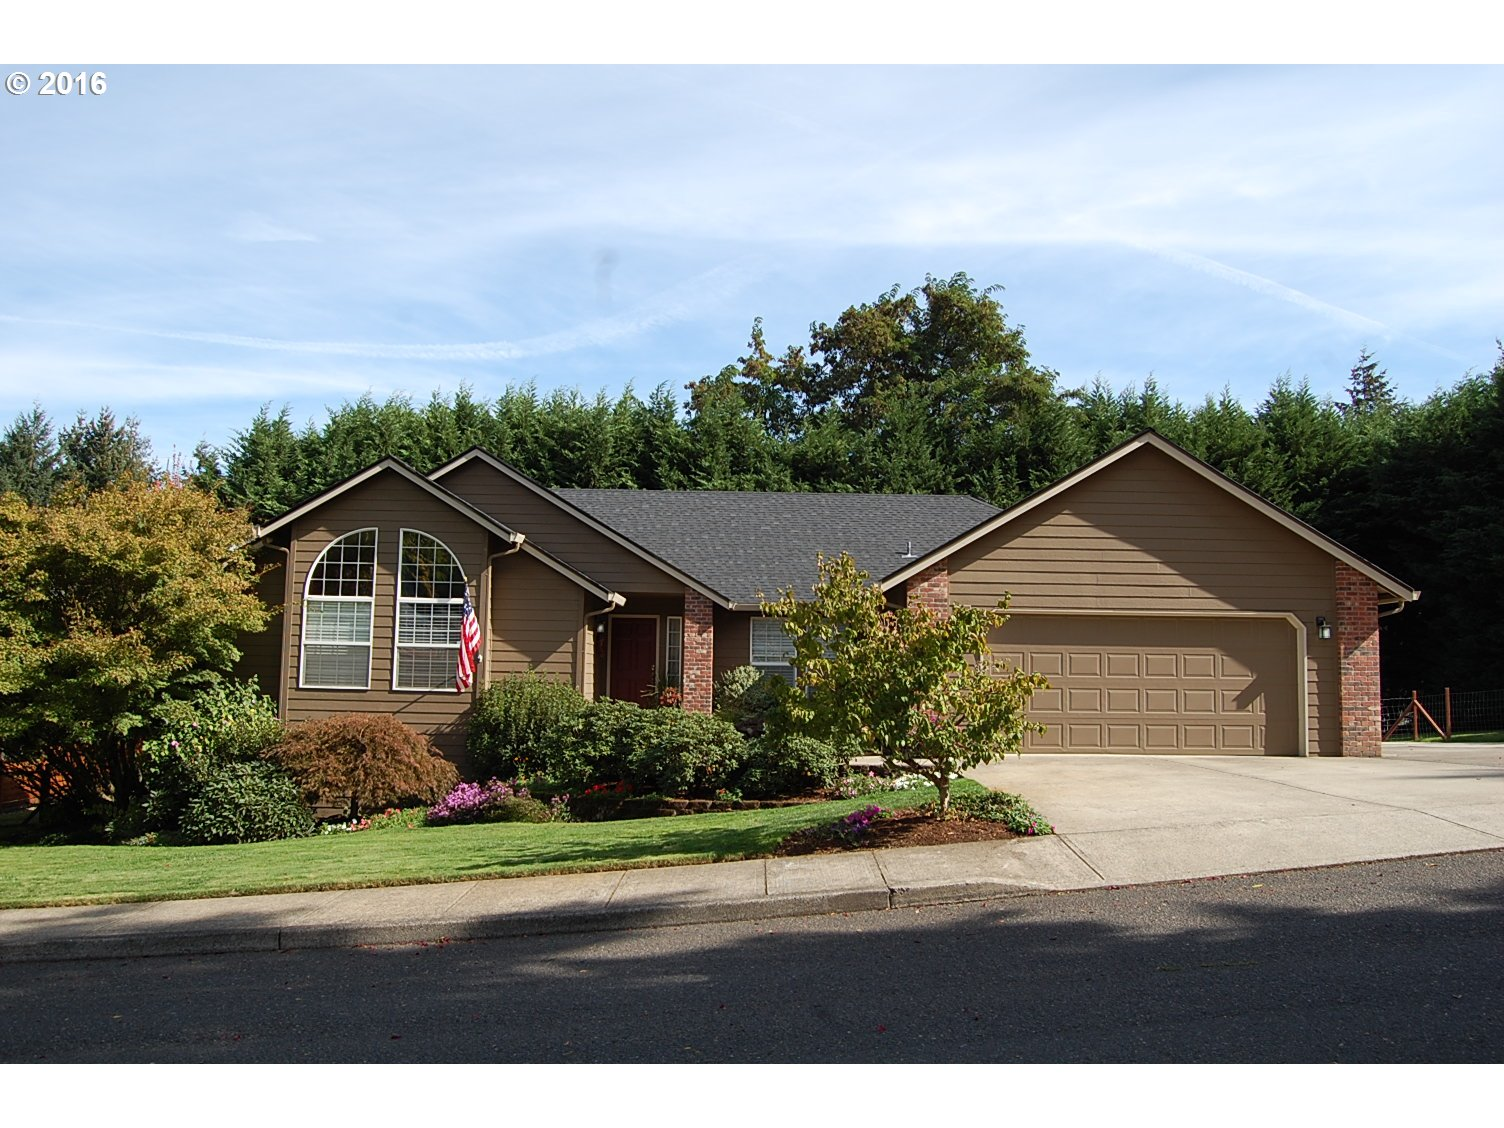 3109 NW View Rd, Vancouver, WA 98685